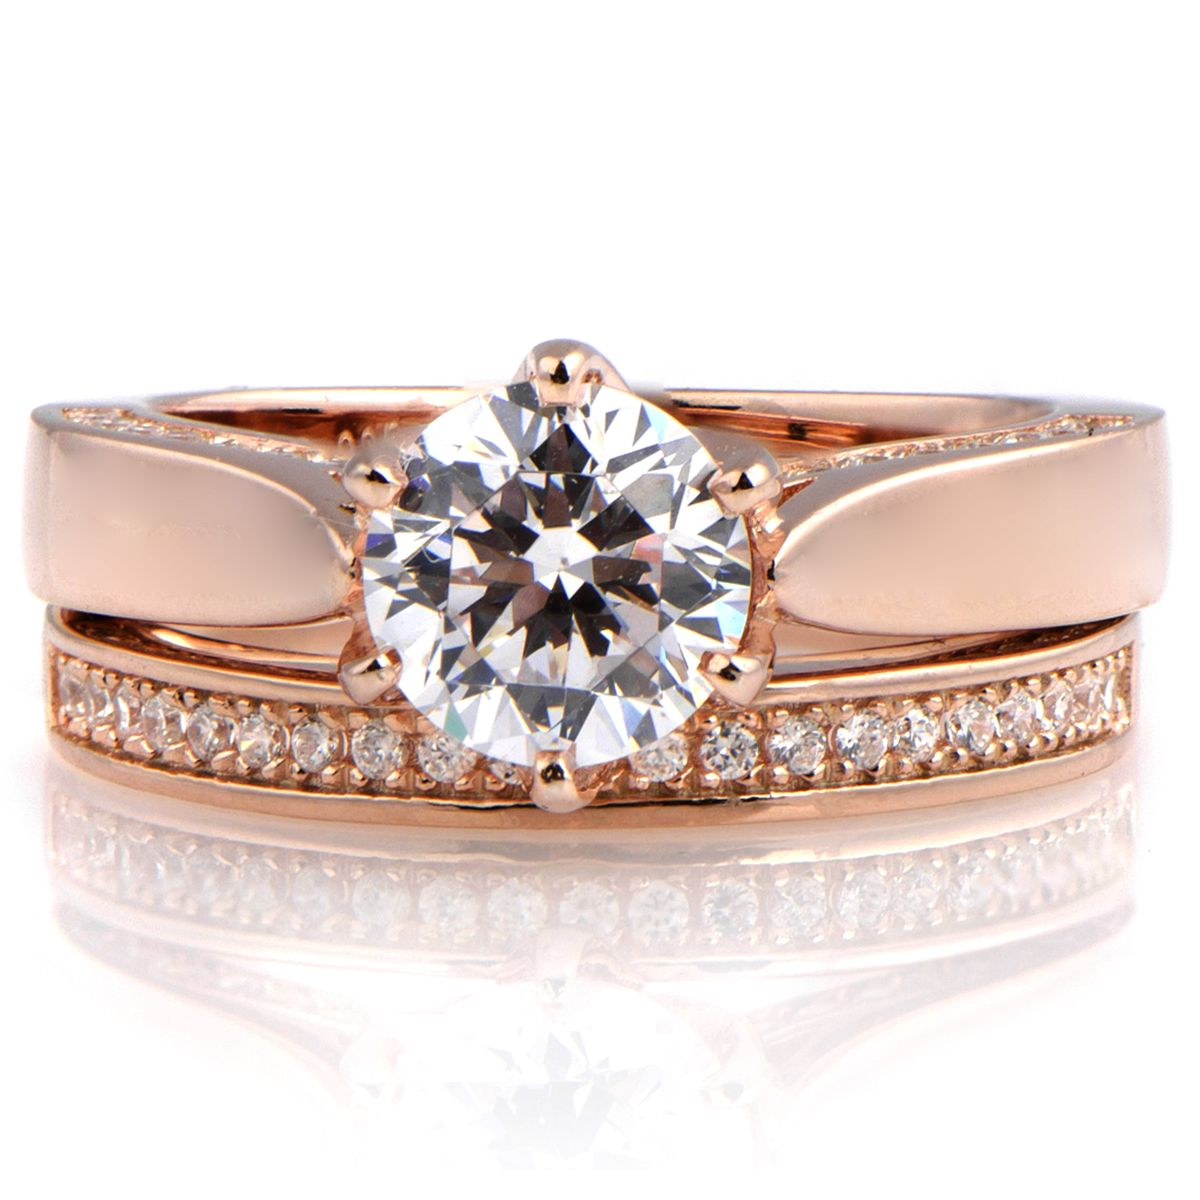 cheap rose gold wedding ring sets minimalist concept on ring - Rose Gold Wedding Ring Sets